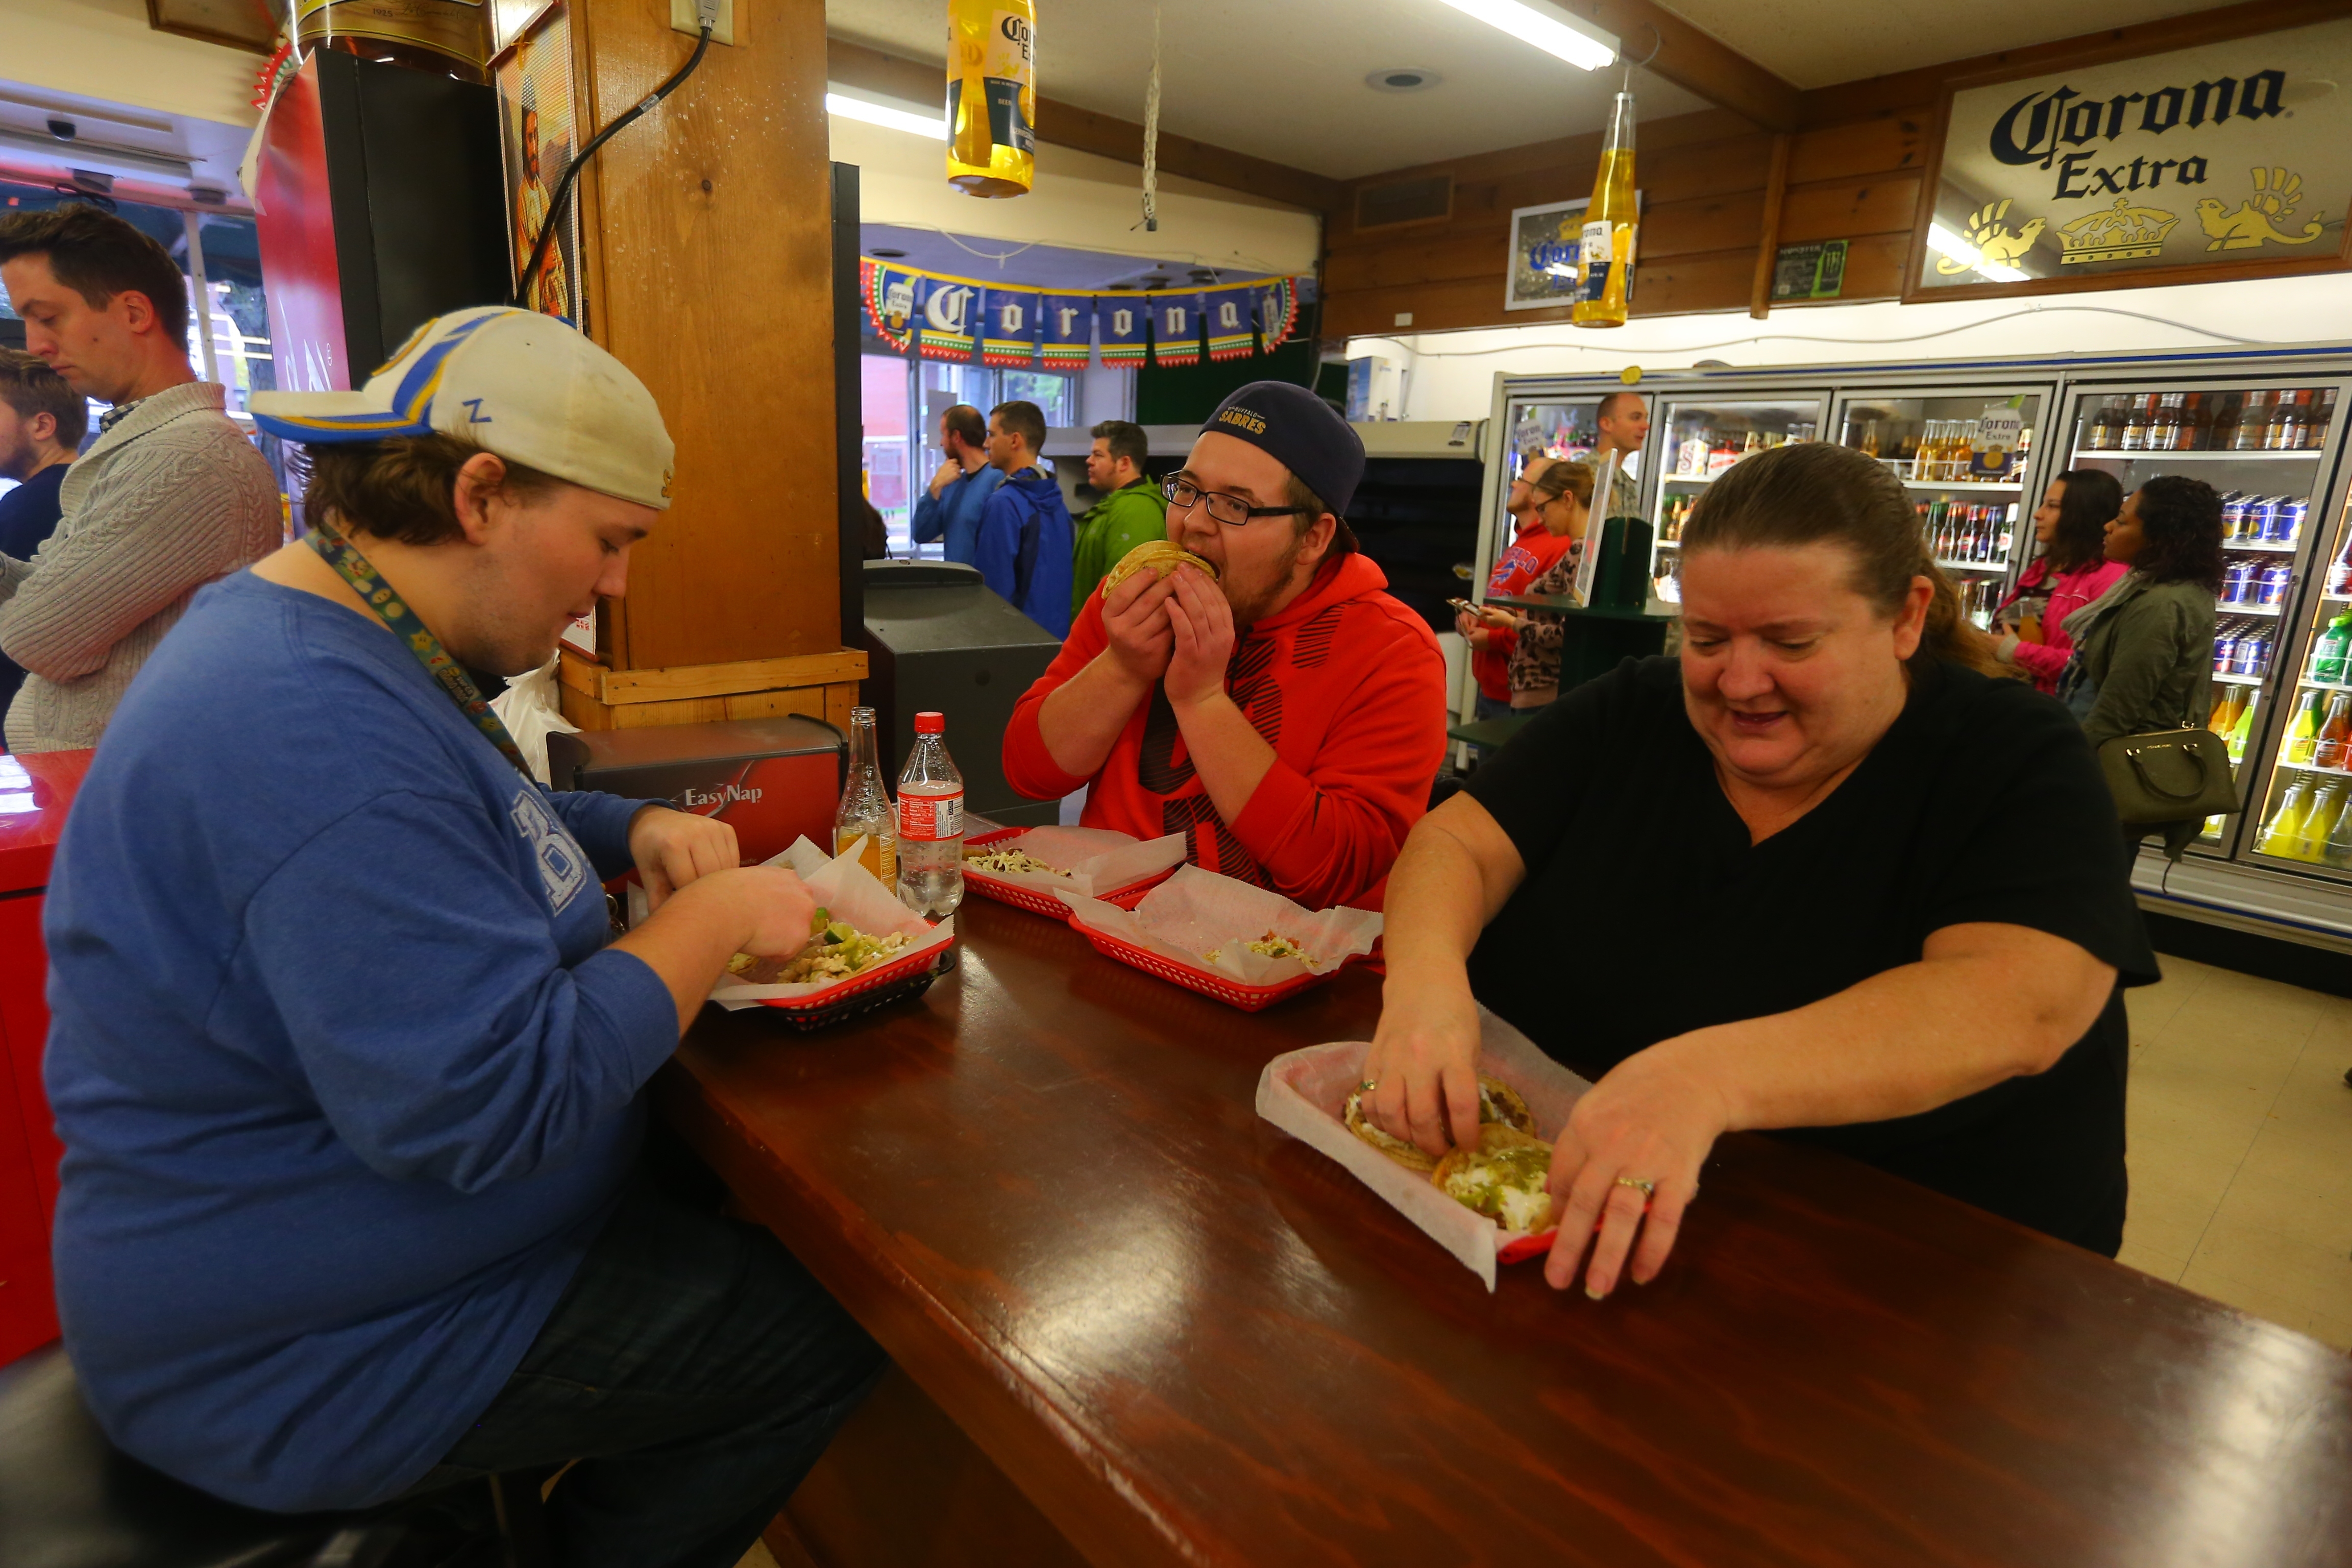 Jack Ceder, left, and his brother Cody Ceder, take their mother Debbie Green out for a taco lunch at La Divina Mexican Store on Friday Oct. 21, 2016, La Divina Mexican Store reopened after briefly closing following a raid by federal agents and the arrest of owner Sergio Mucino and several employees, in Kenmore, N.Y., earlier this week. (John Hickey/Buffalo News)